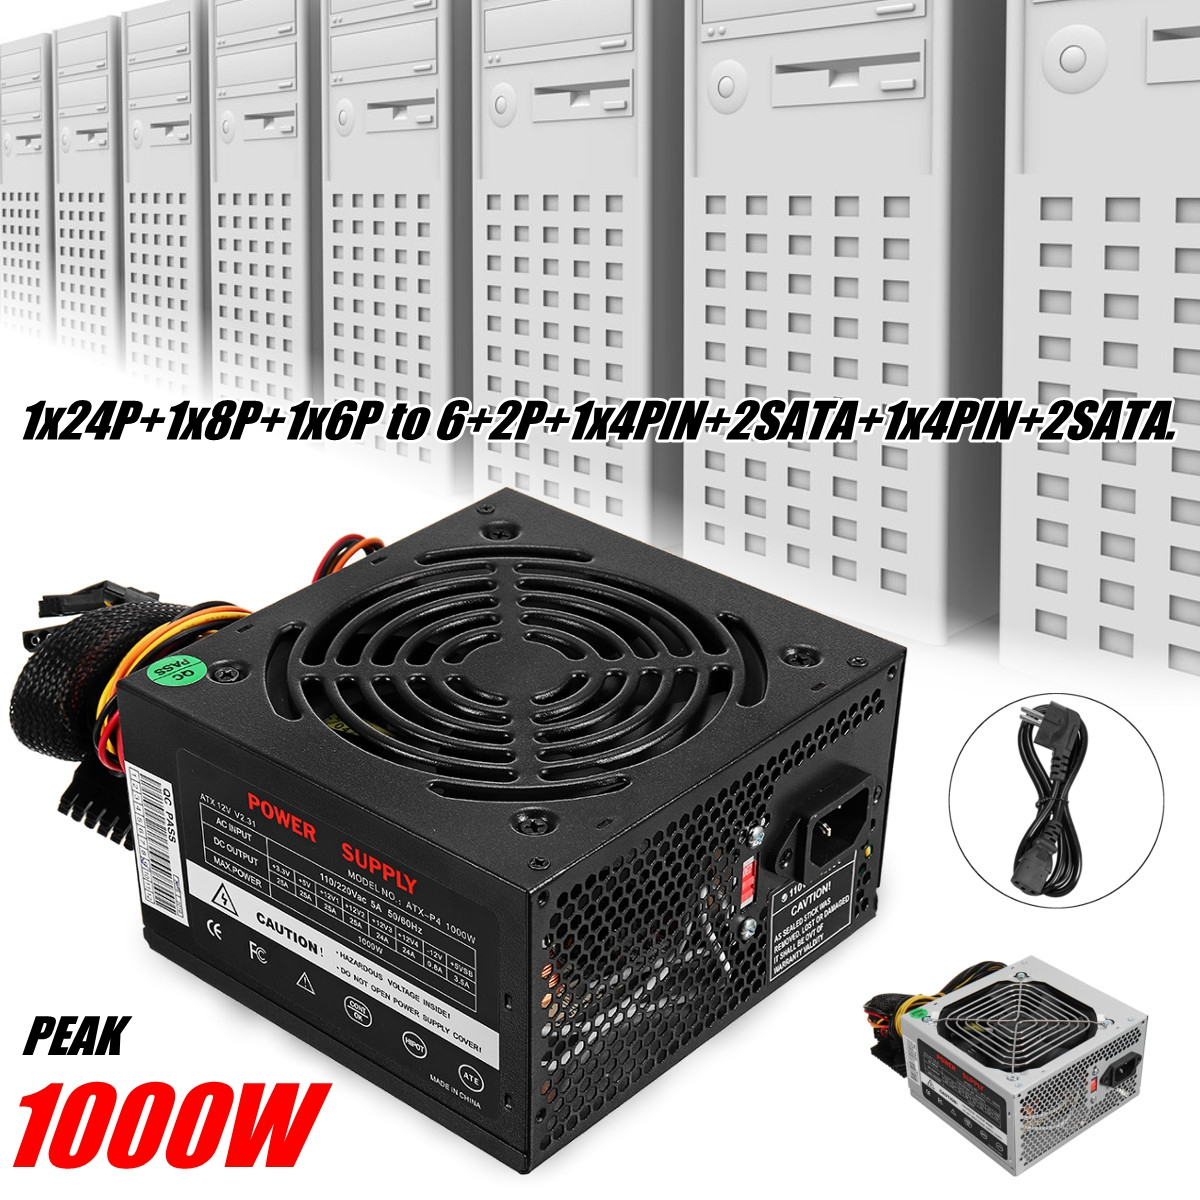 1000W Power Supply PSU PFC Silent Fan ATX 24pin 12V PC Computer SATA Gaming PC Power Supply For Intel AMD Computer silver max 500w psu pfc atx 12v 24pin sata gaming pc power supply for intel amd computer power supply for btc